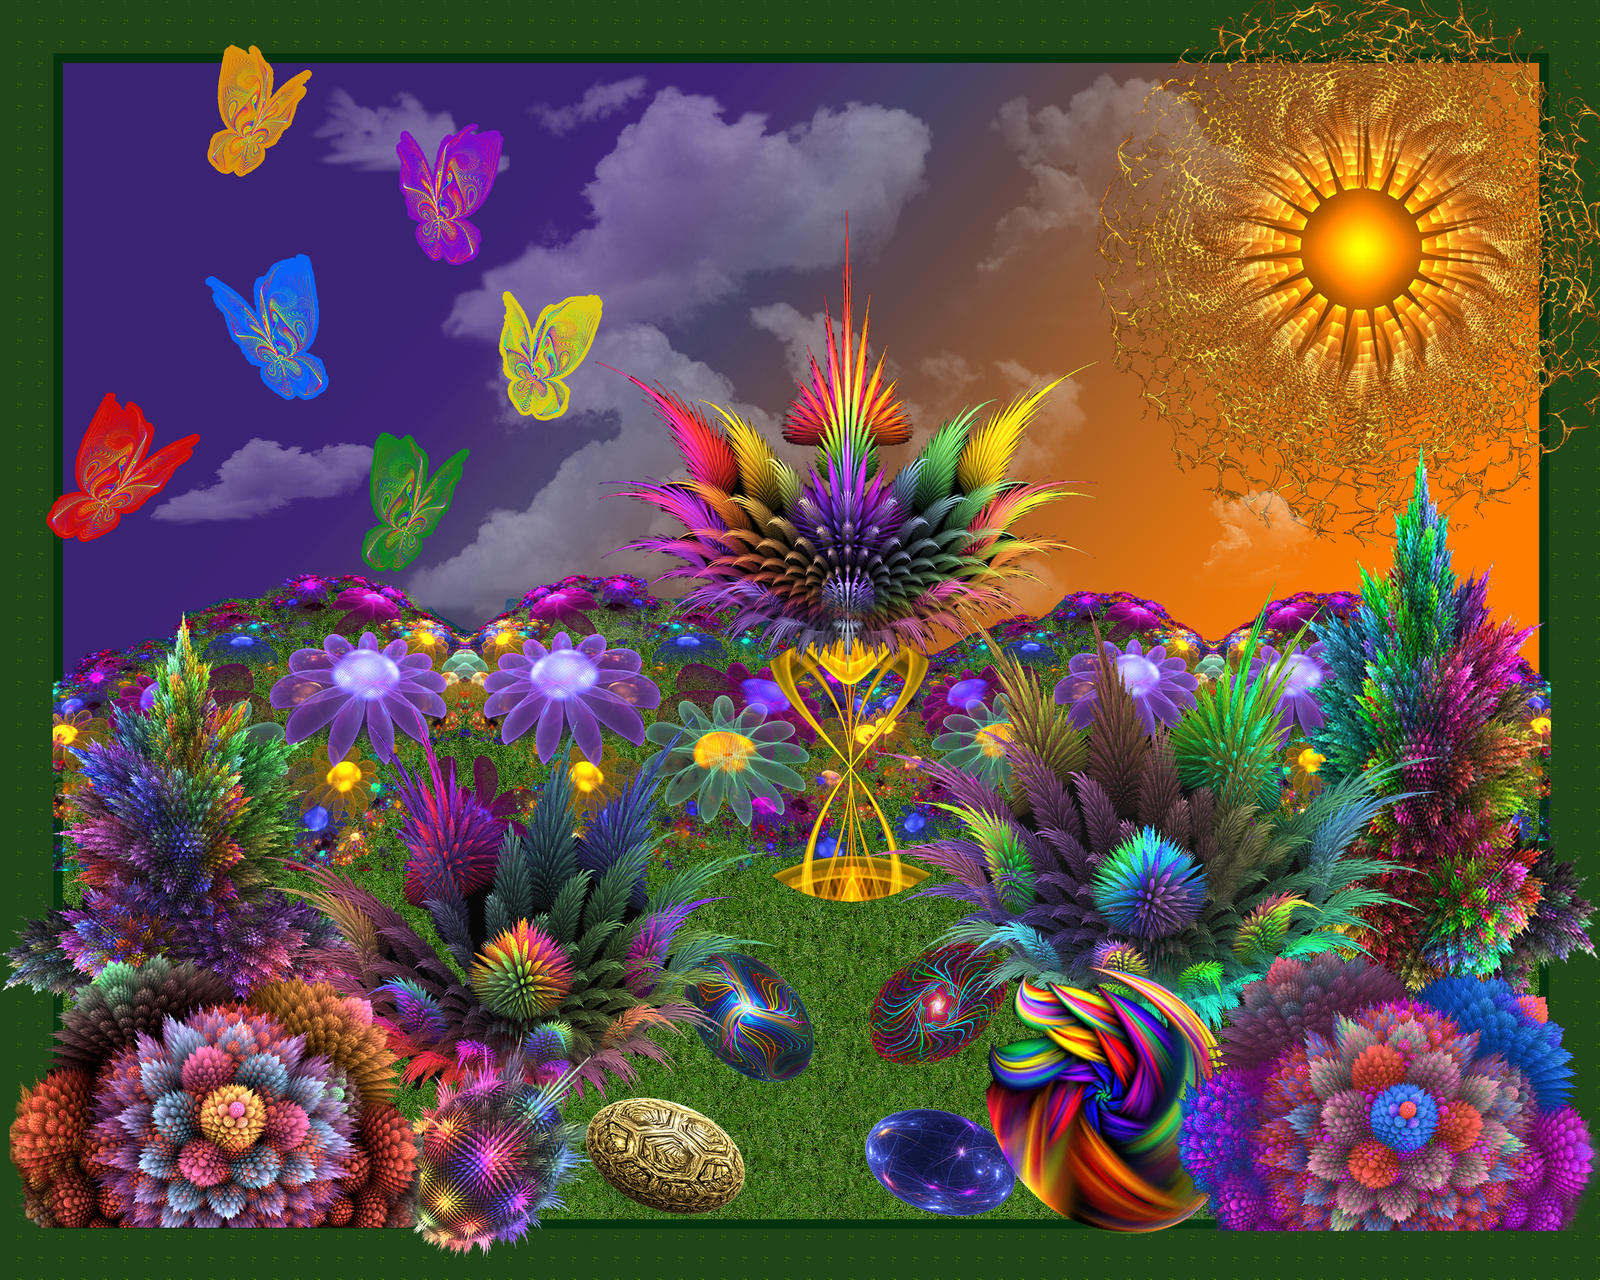 rework of apo rainbow butterfly garden based on some advice from